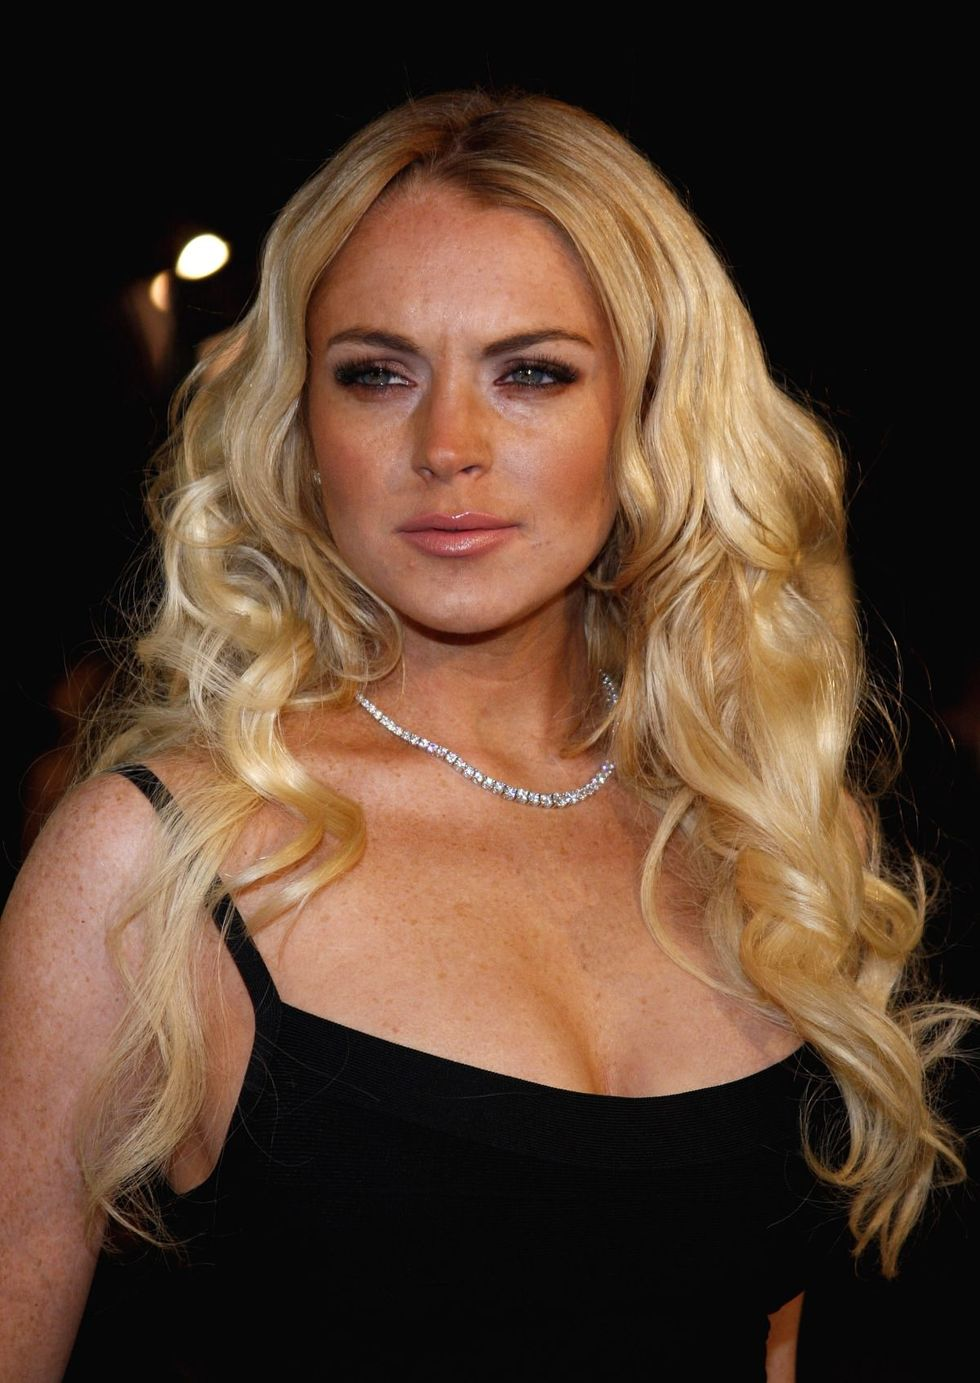 lindsay-lohan-cloverfield-premiere-in-los-angeles-01